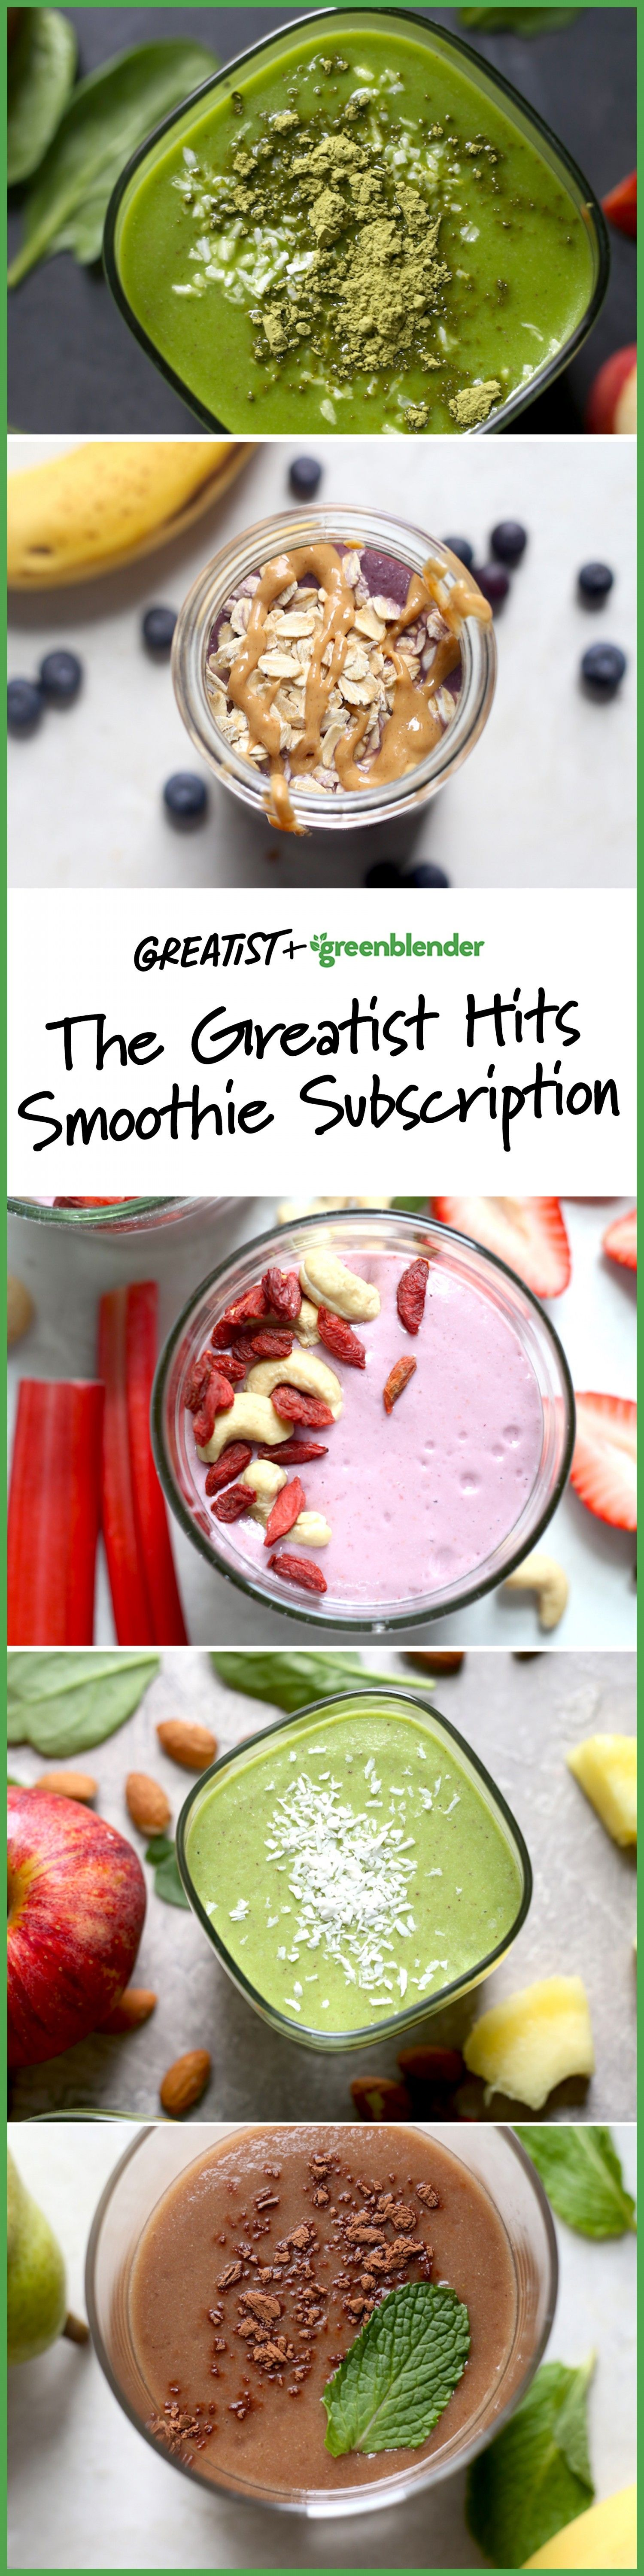 You Can Get Our Favorite Summer Smoothie Recipes Sent